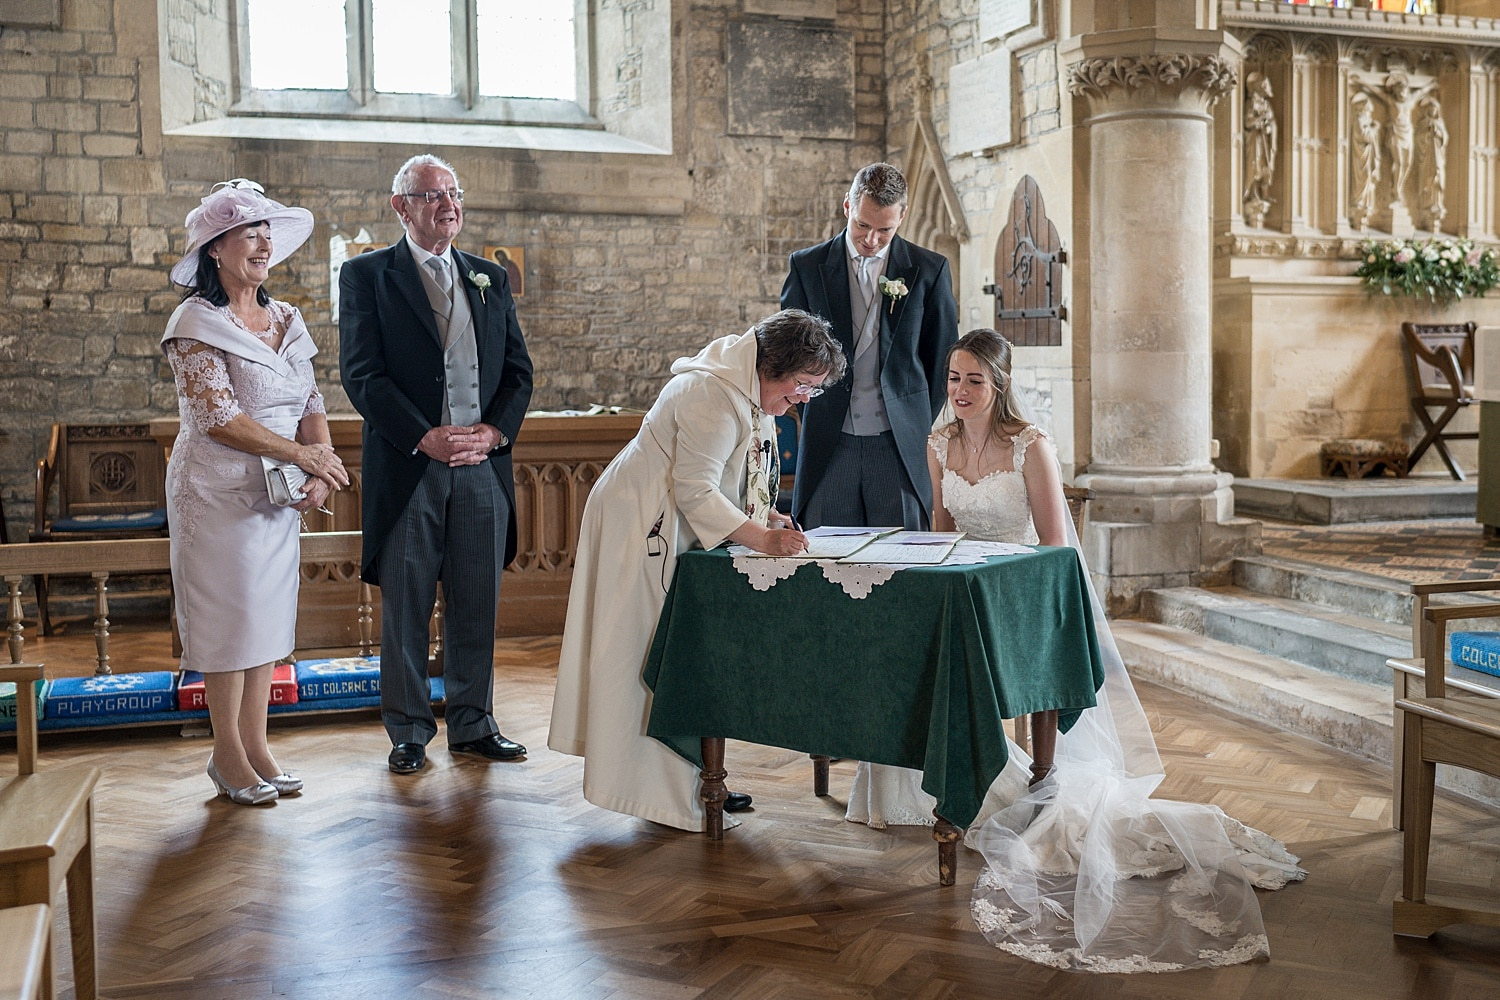 Marriage ceremony at Colerne Church